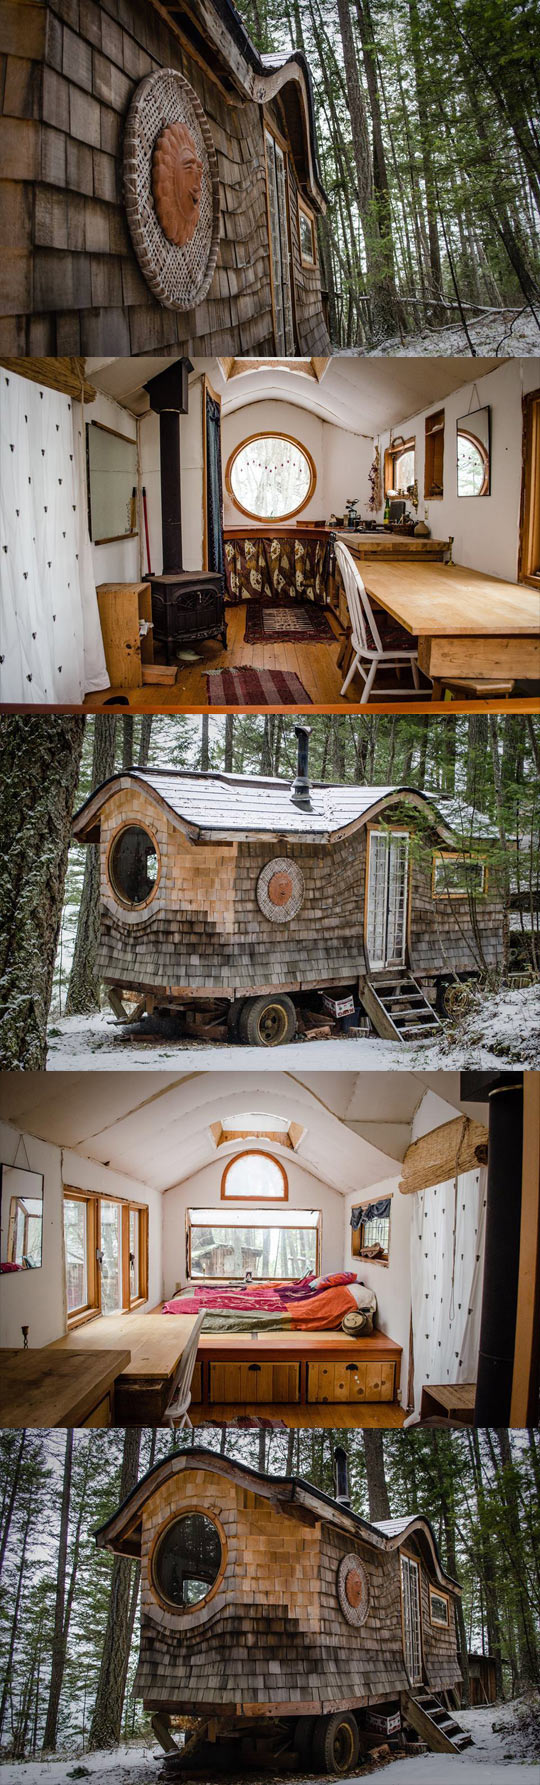 funny-little-house-forest-cozy